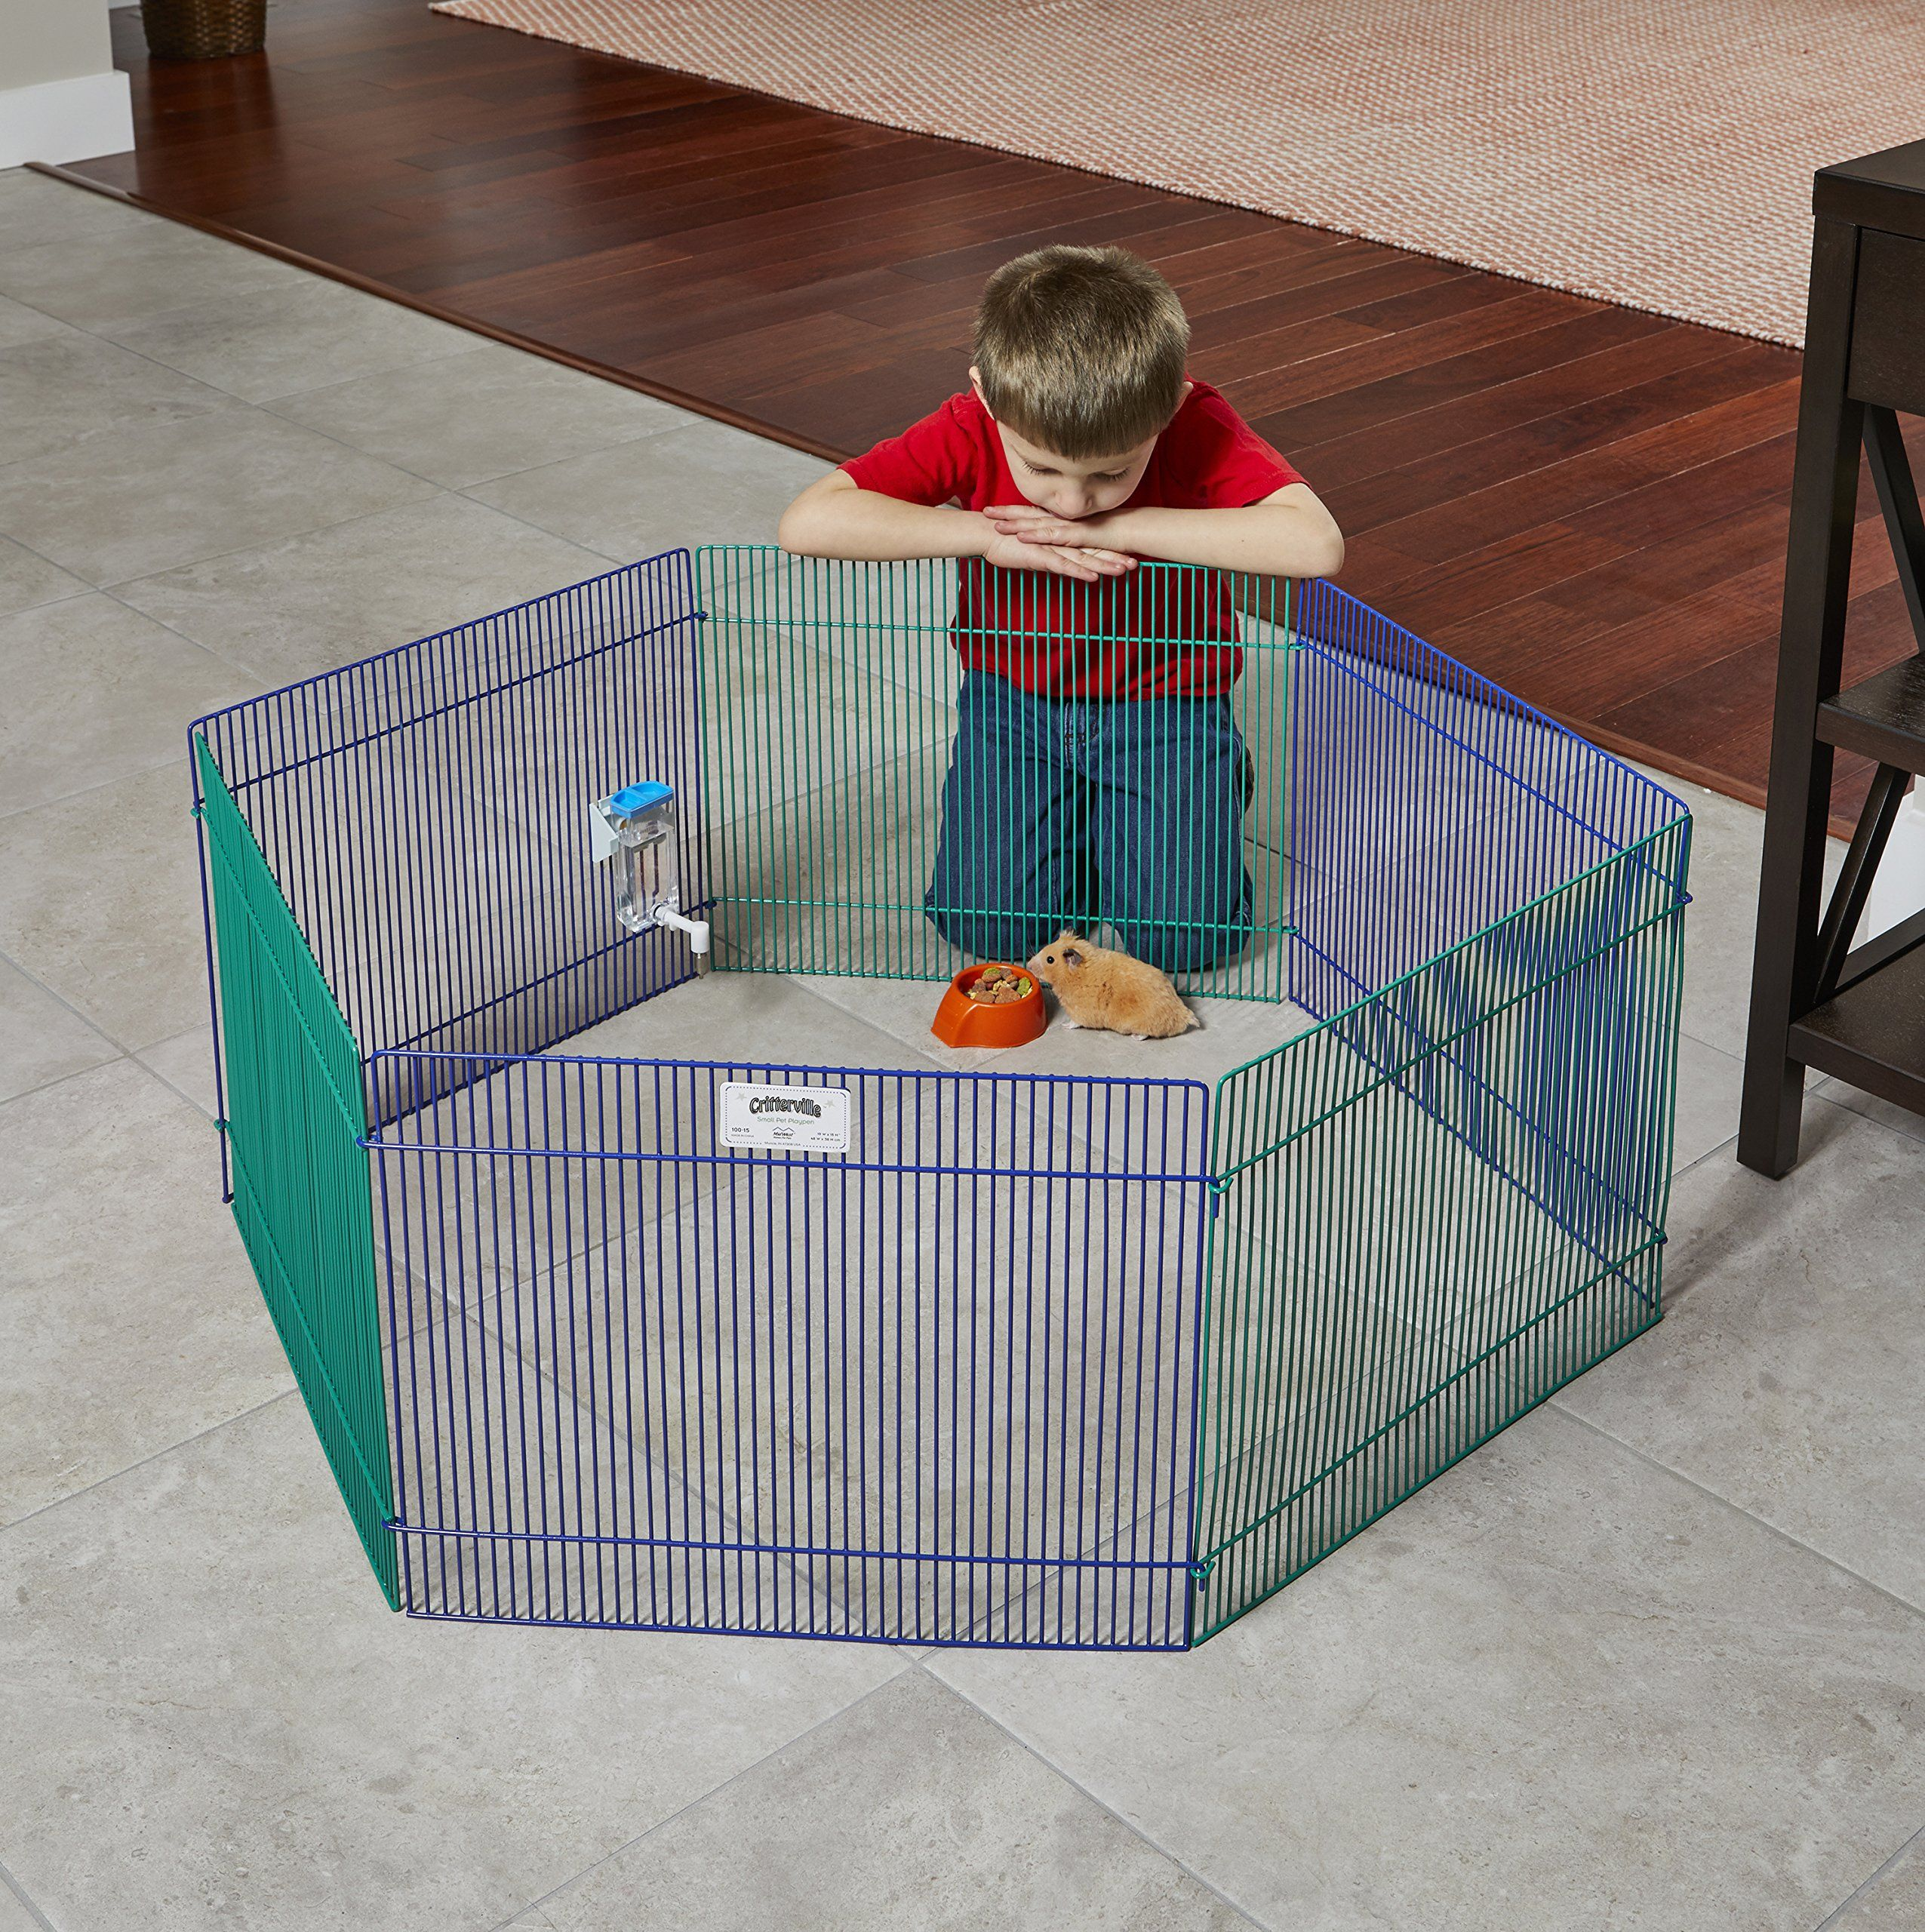 Midwest Homes For Pets Small Animal Pen Pets Homes Midwest Pen Ad Dog Playpen Small Pets Pet Playpens